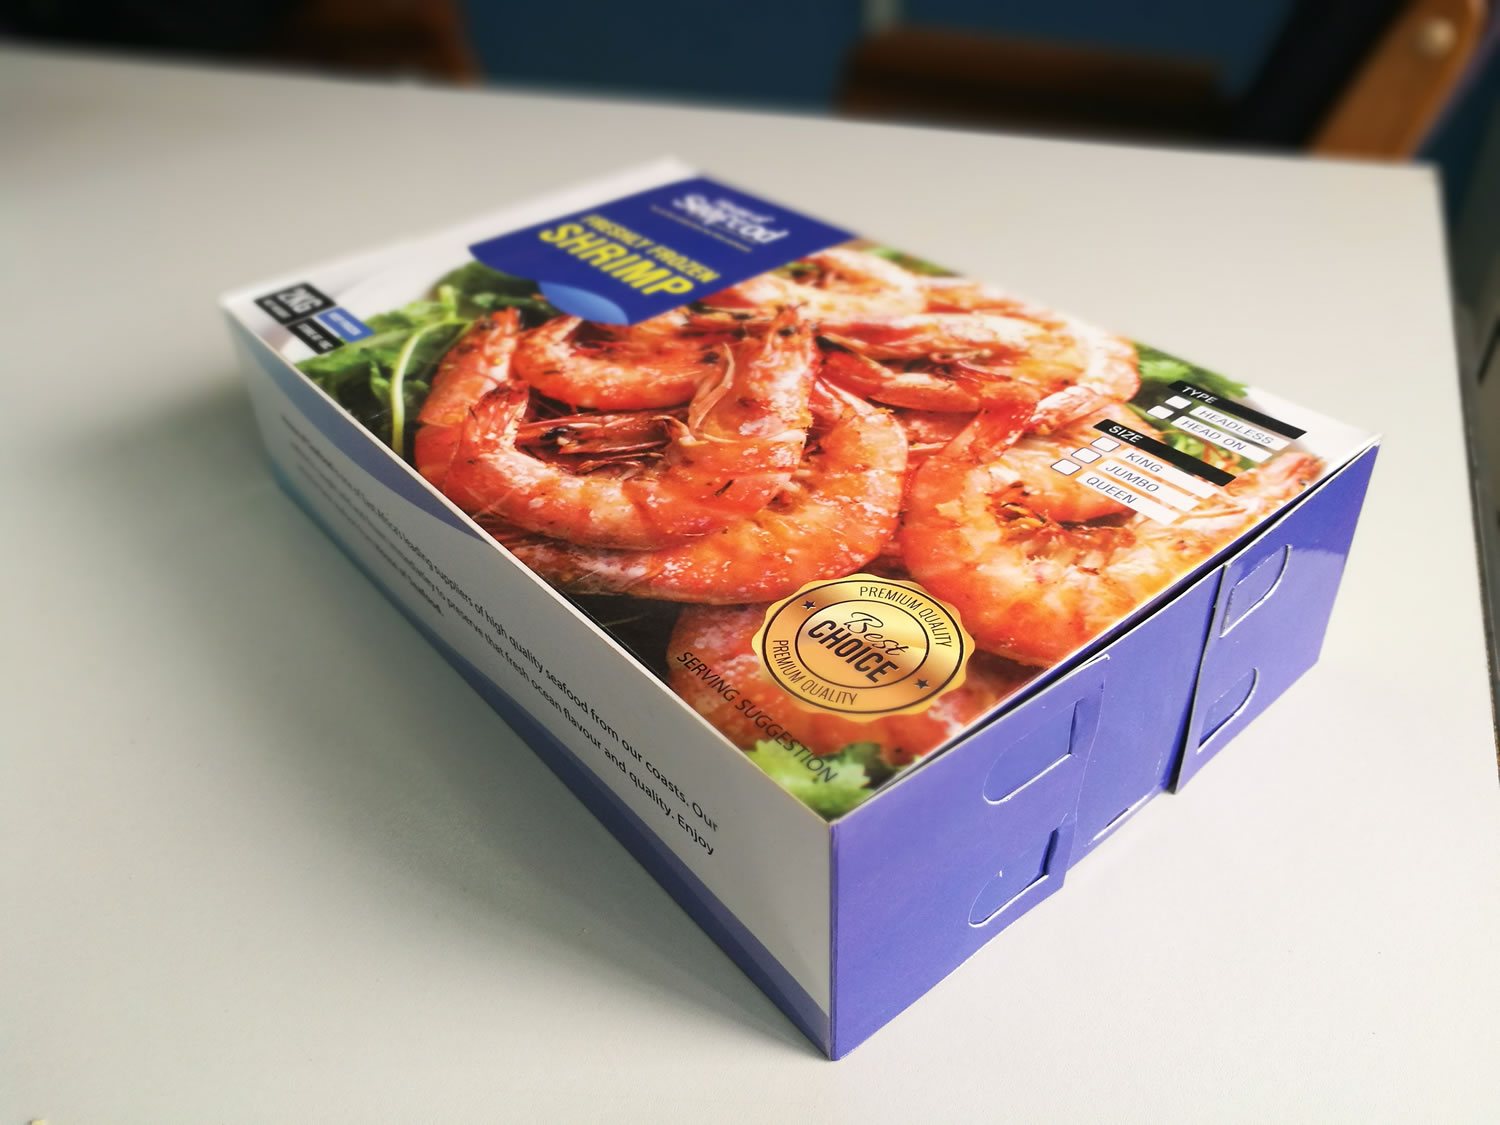 Frozen food foldable waterproofpackaging box designed and printing in Uganda by Quantum Dynamics Ltd